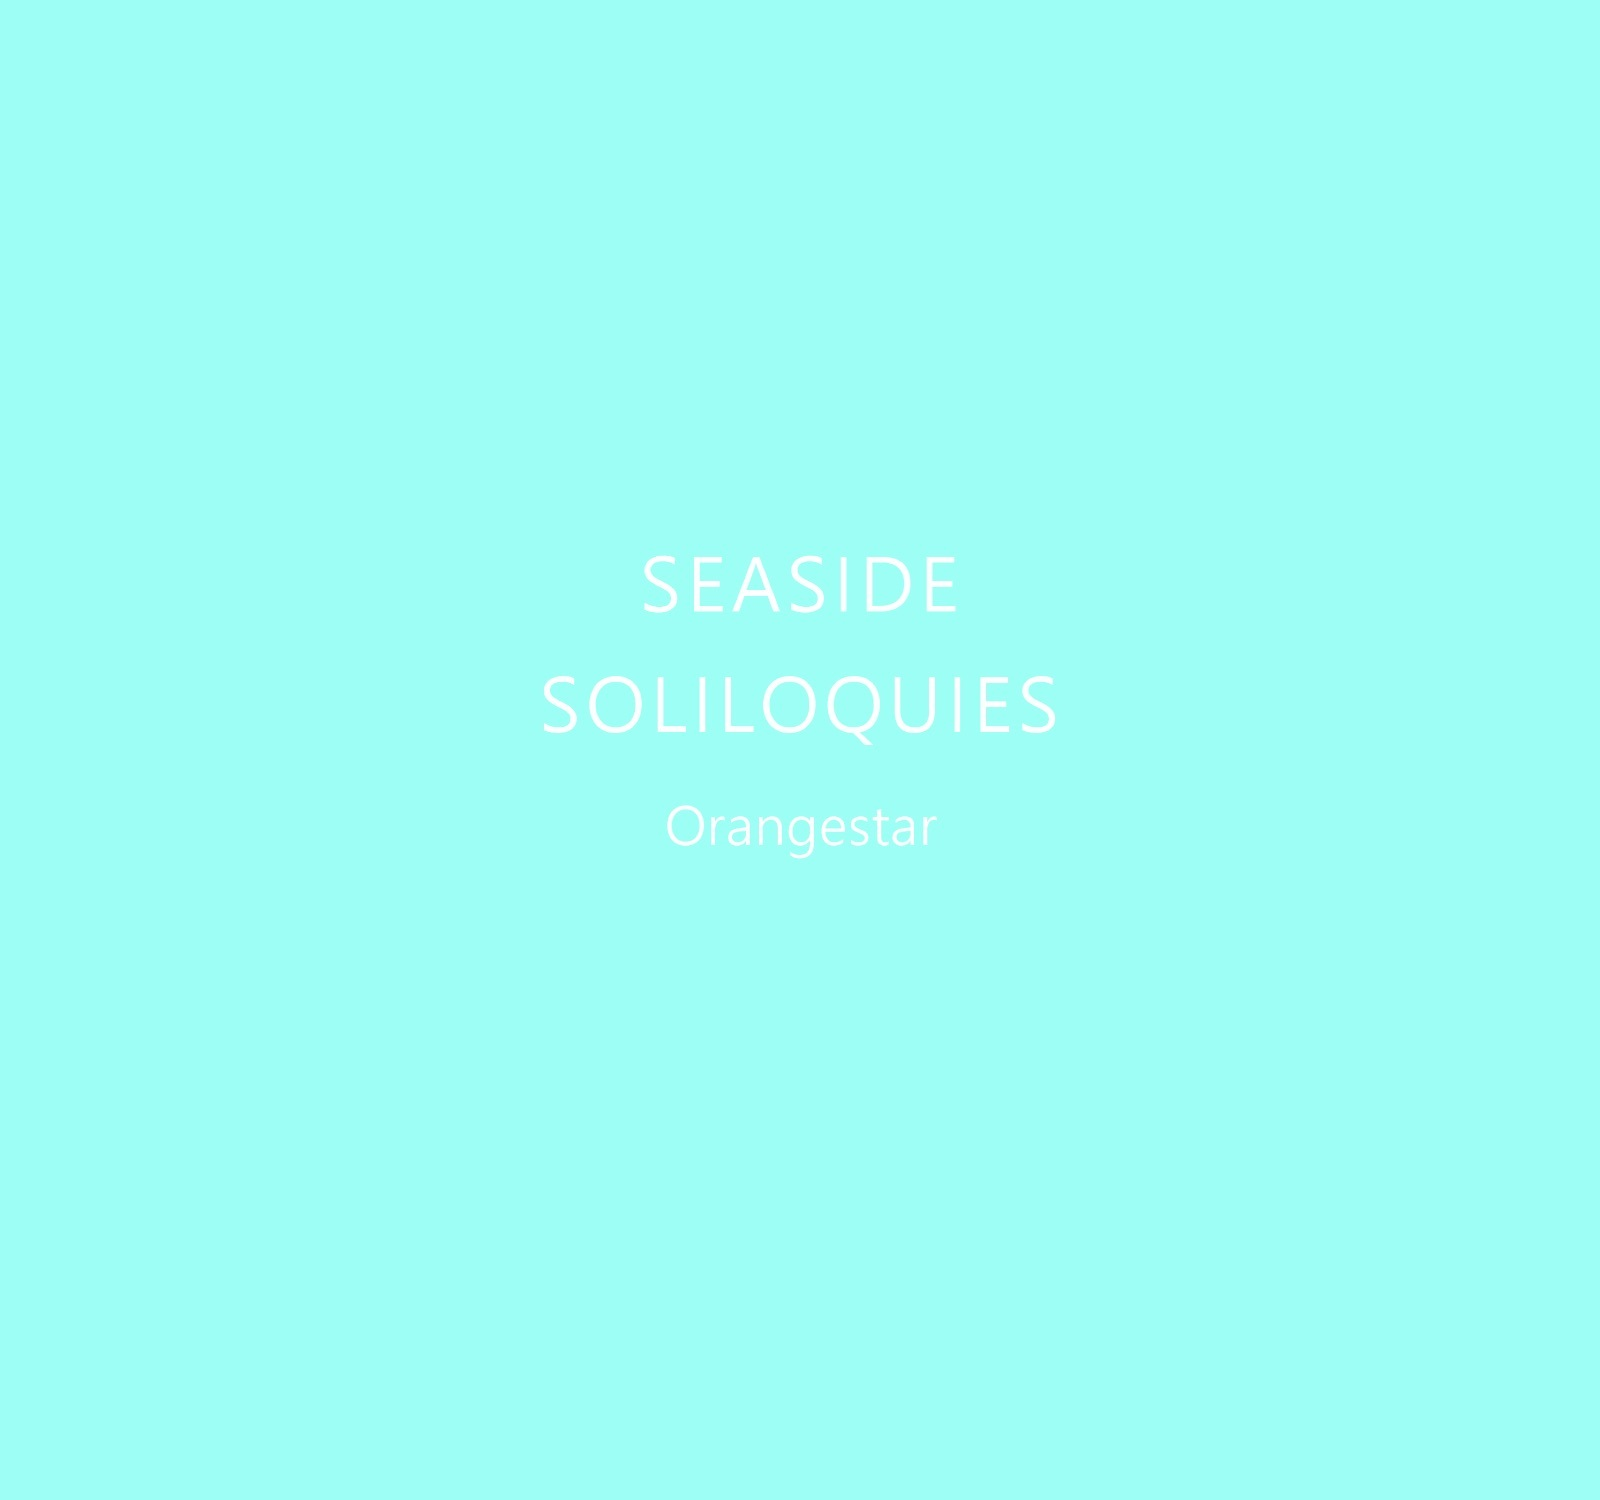 Orangestar『SEASIDE SOLILOQUIES』